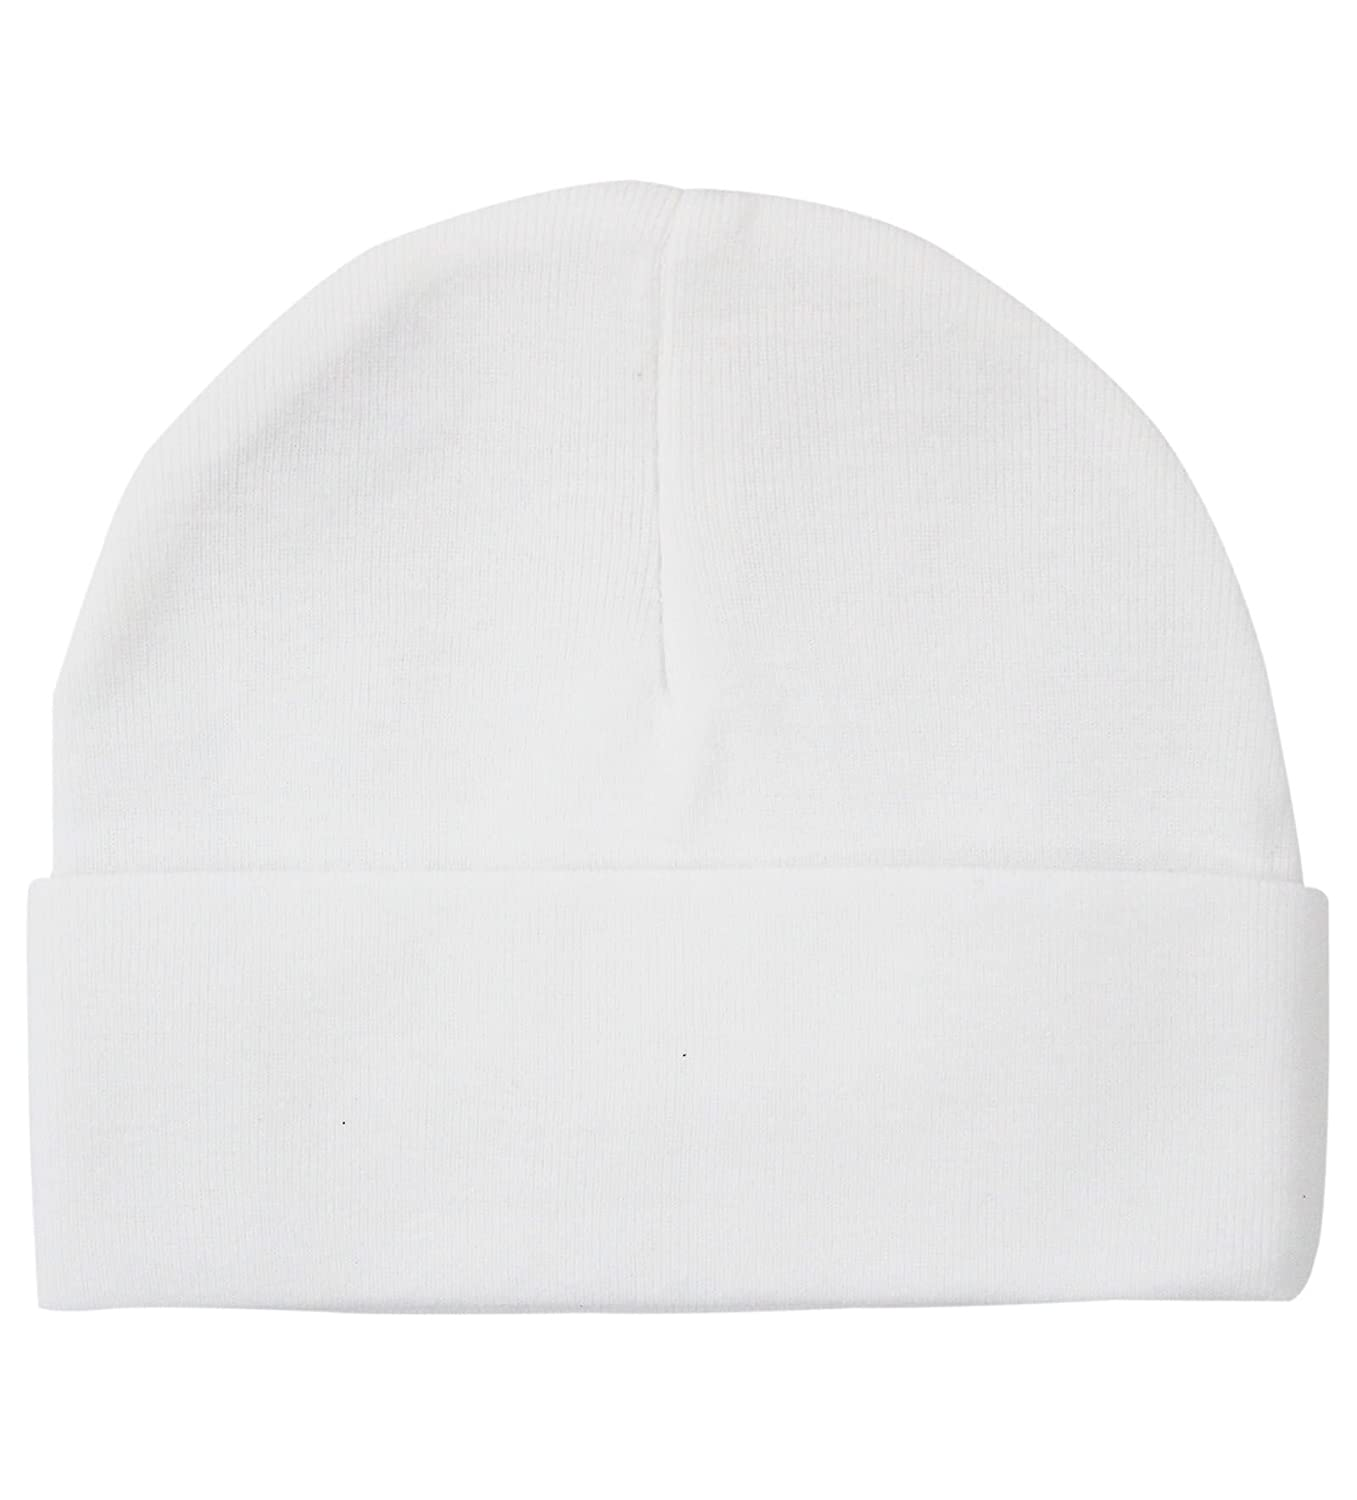 ce4c975a38d Wonderkids Baby Cap-White  Amazon.in  Clothing   Accessories